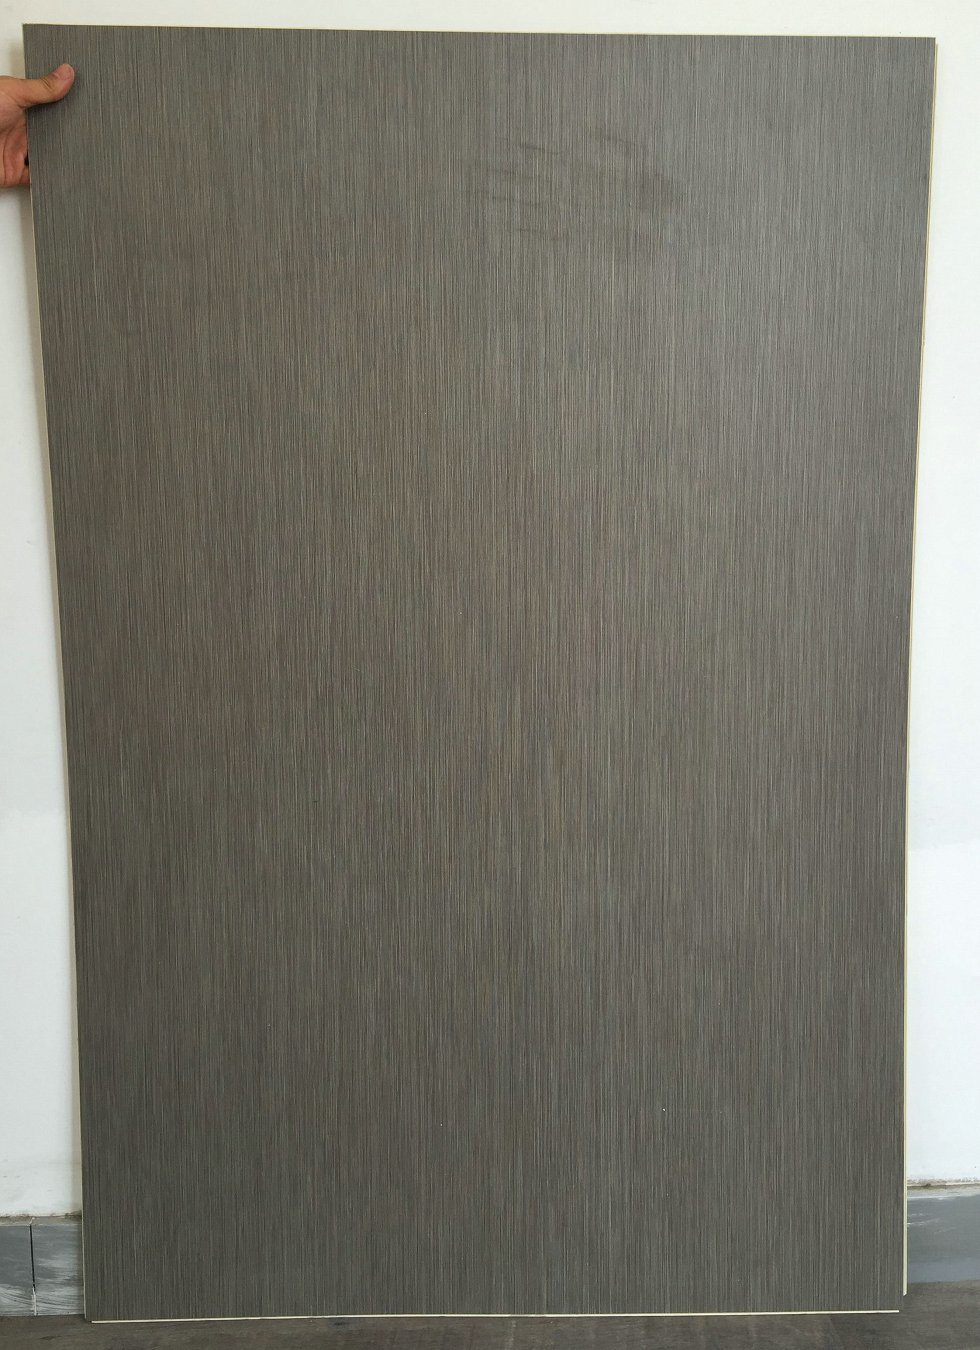 WPC Vinyl Wall Panels / WPC Wall Covering / WPC Boards for Wall Decoration with Drop Lock (935X1235mm)